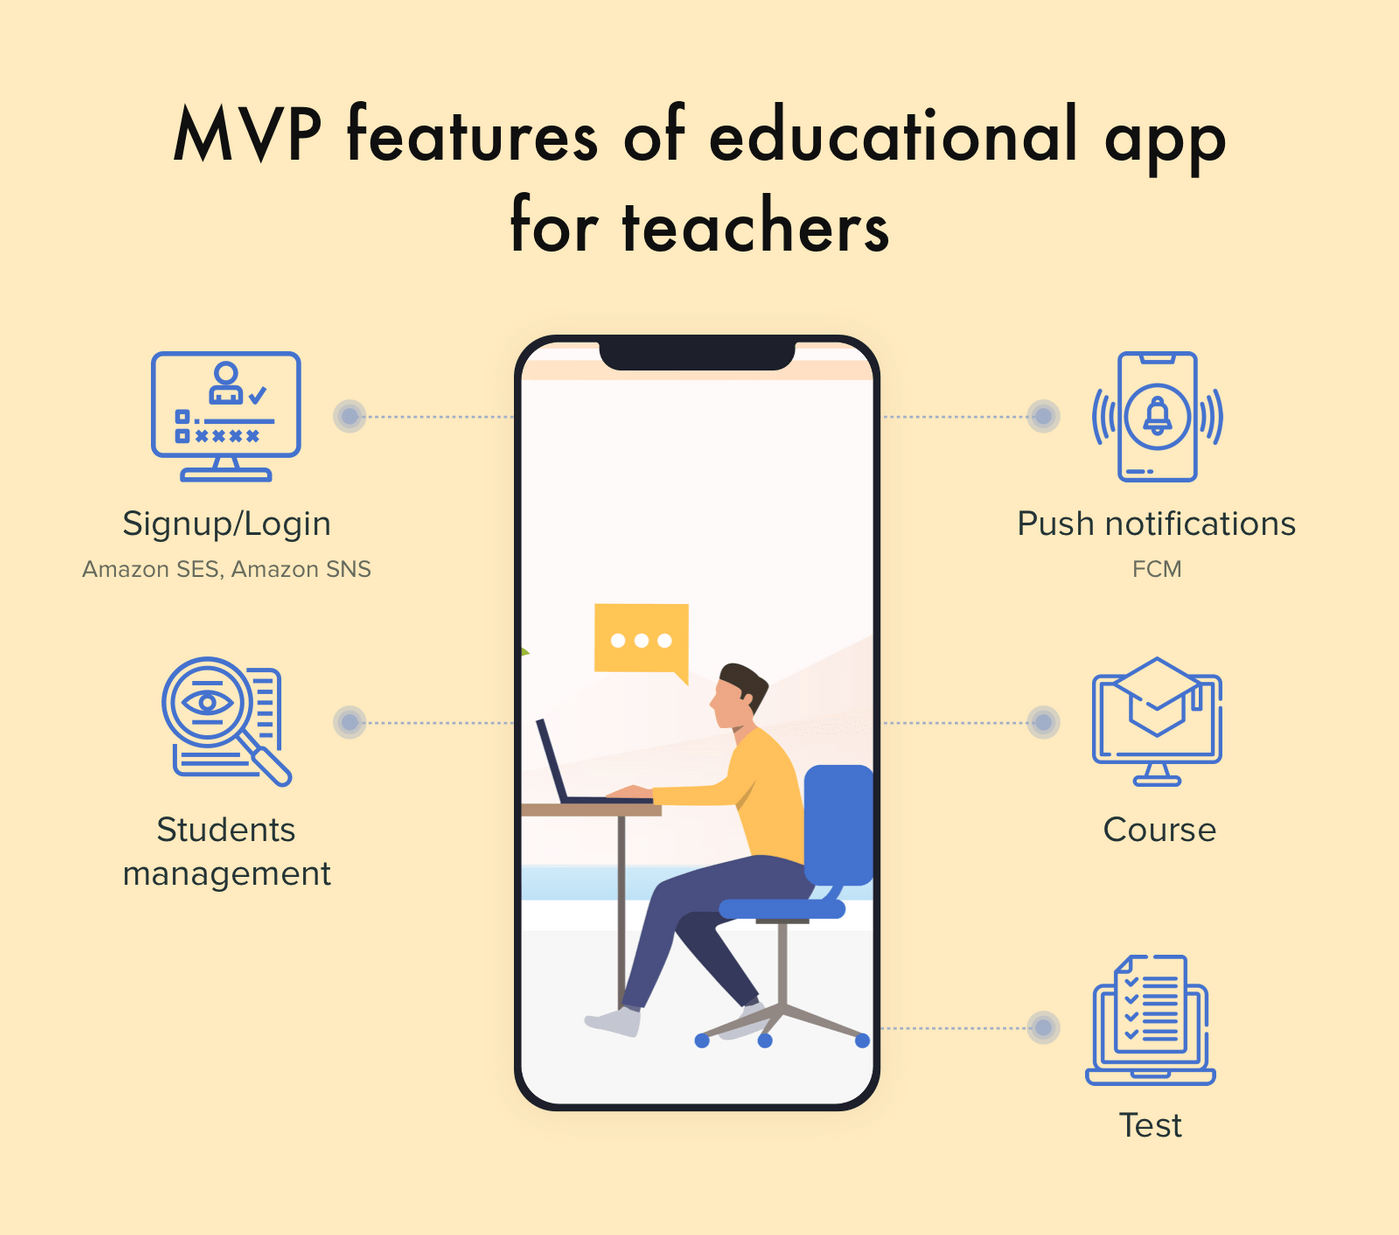 Features of an education app